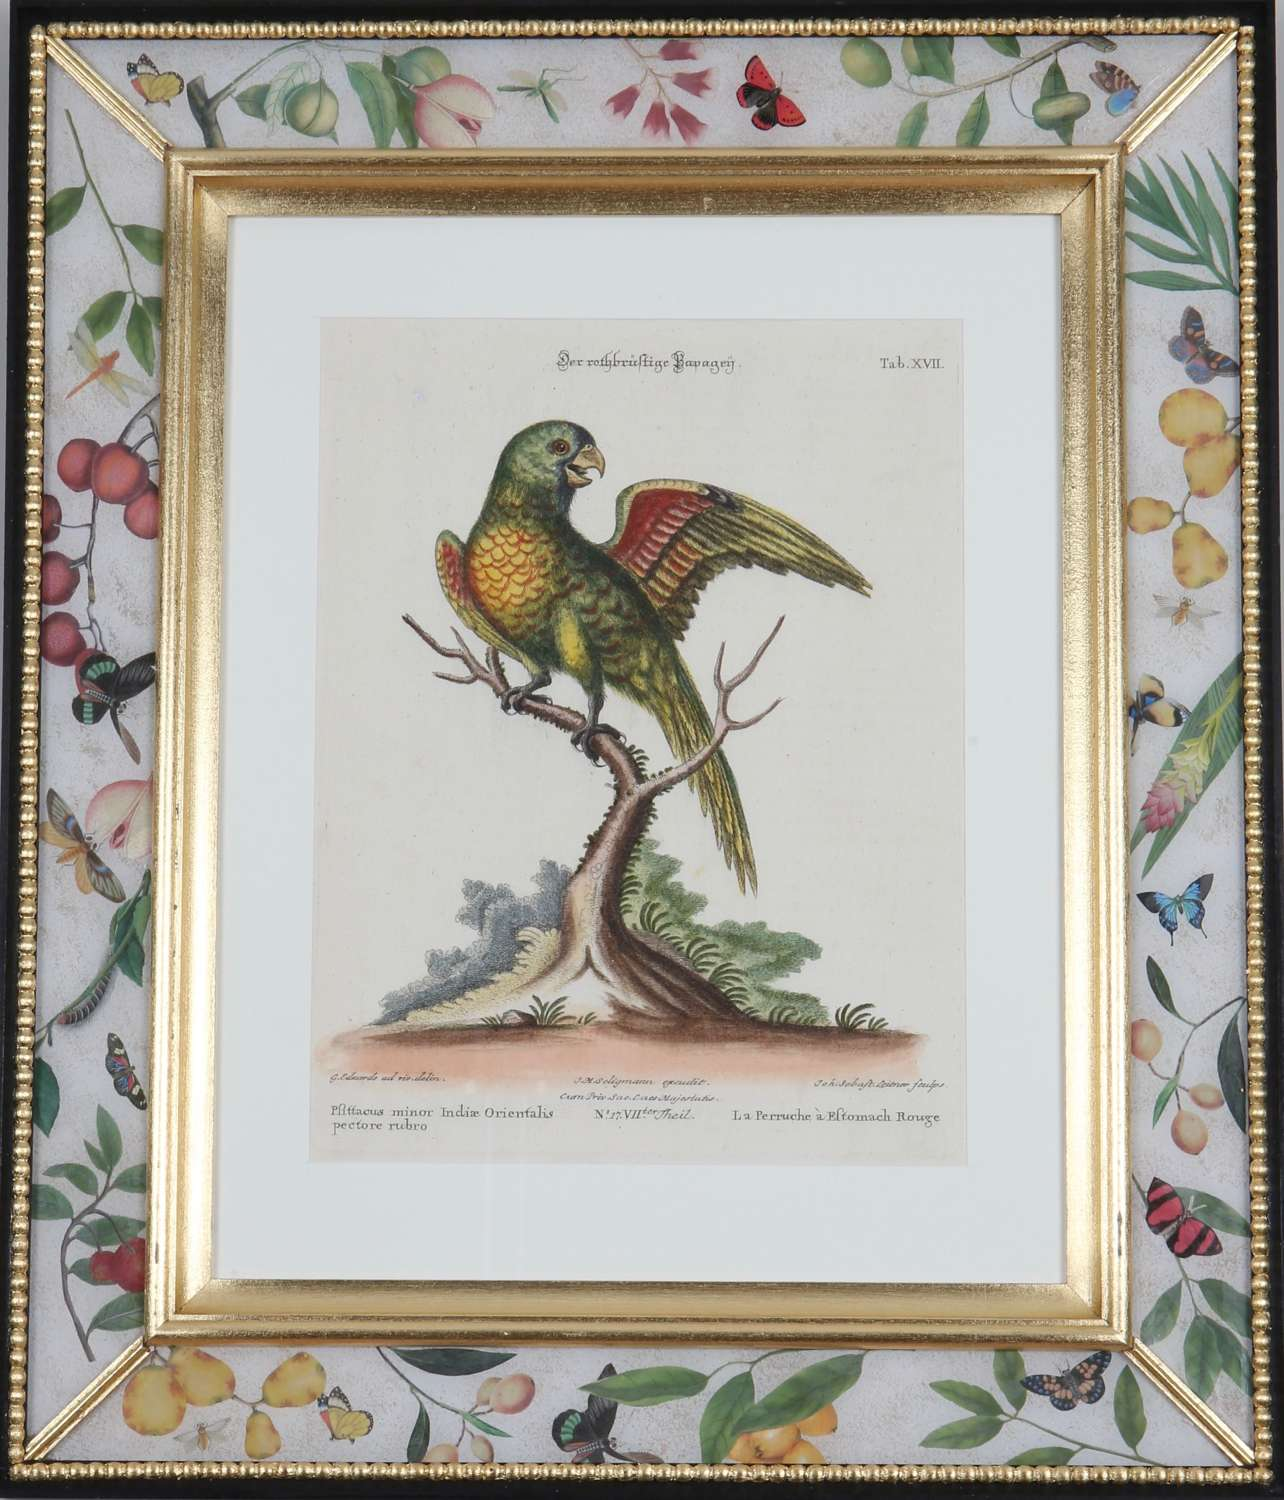 Johann Seligmann: Engravings of parrots after George Edwards, 1770.